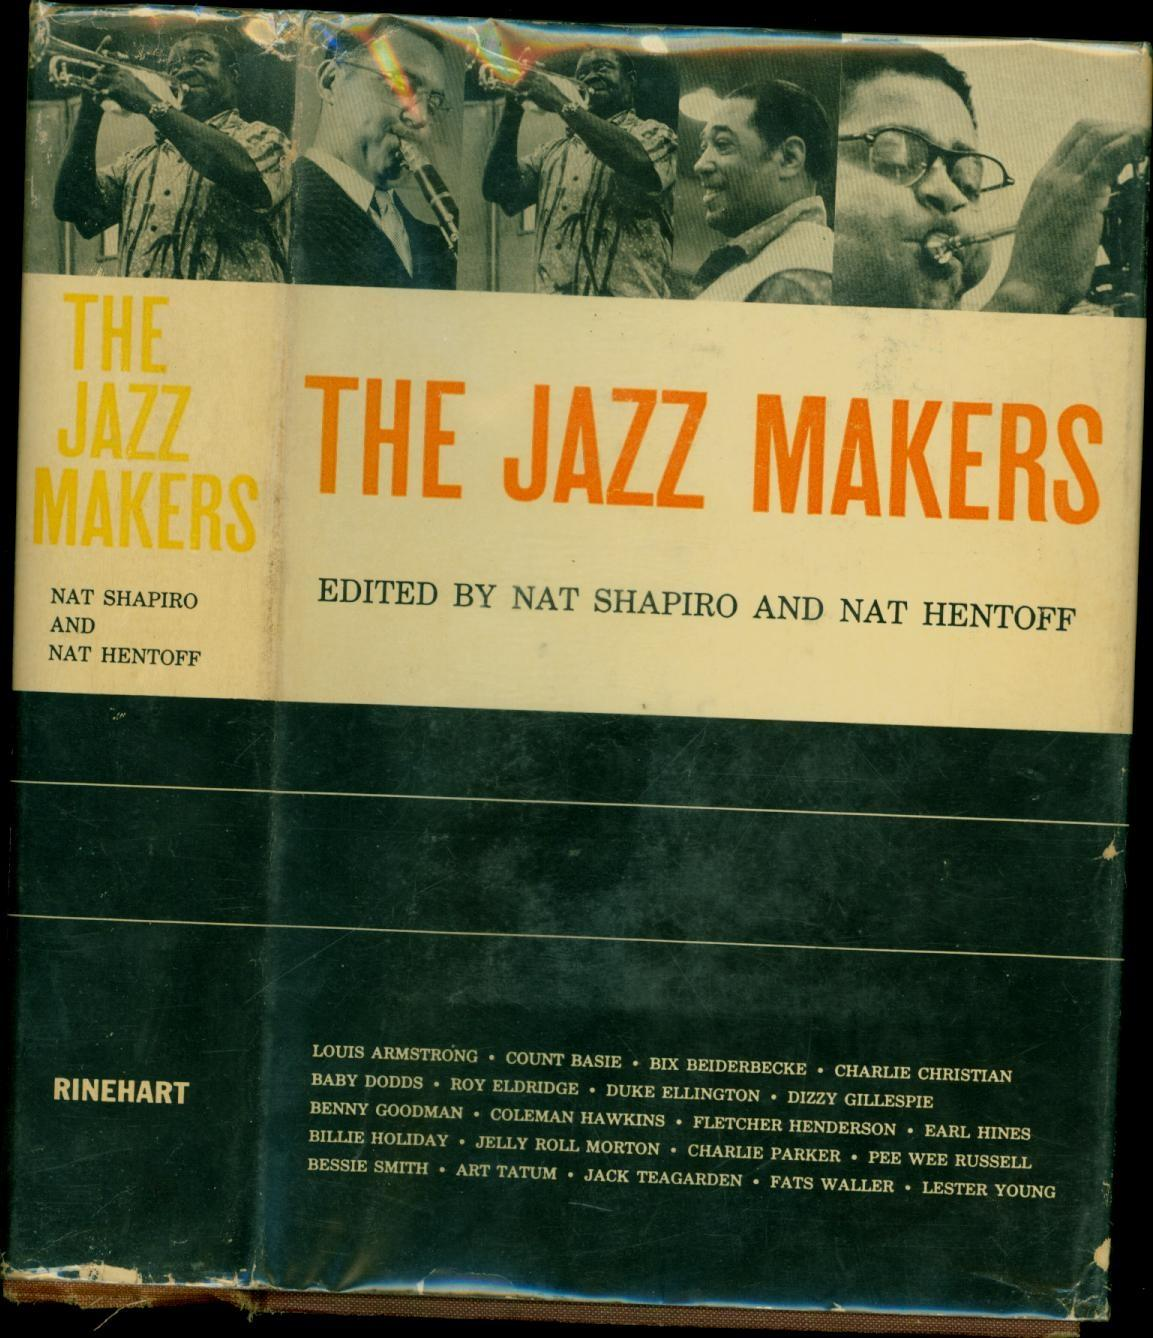 The Jazz Makers (SIGNED BY NAT HENTOFF): Shapiro, Nat, and Nat Hentoff, Edited by